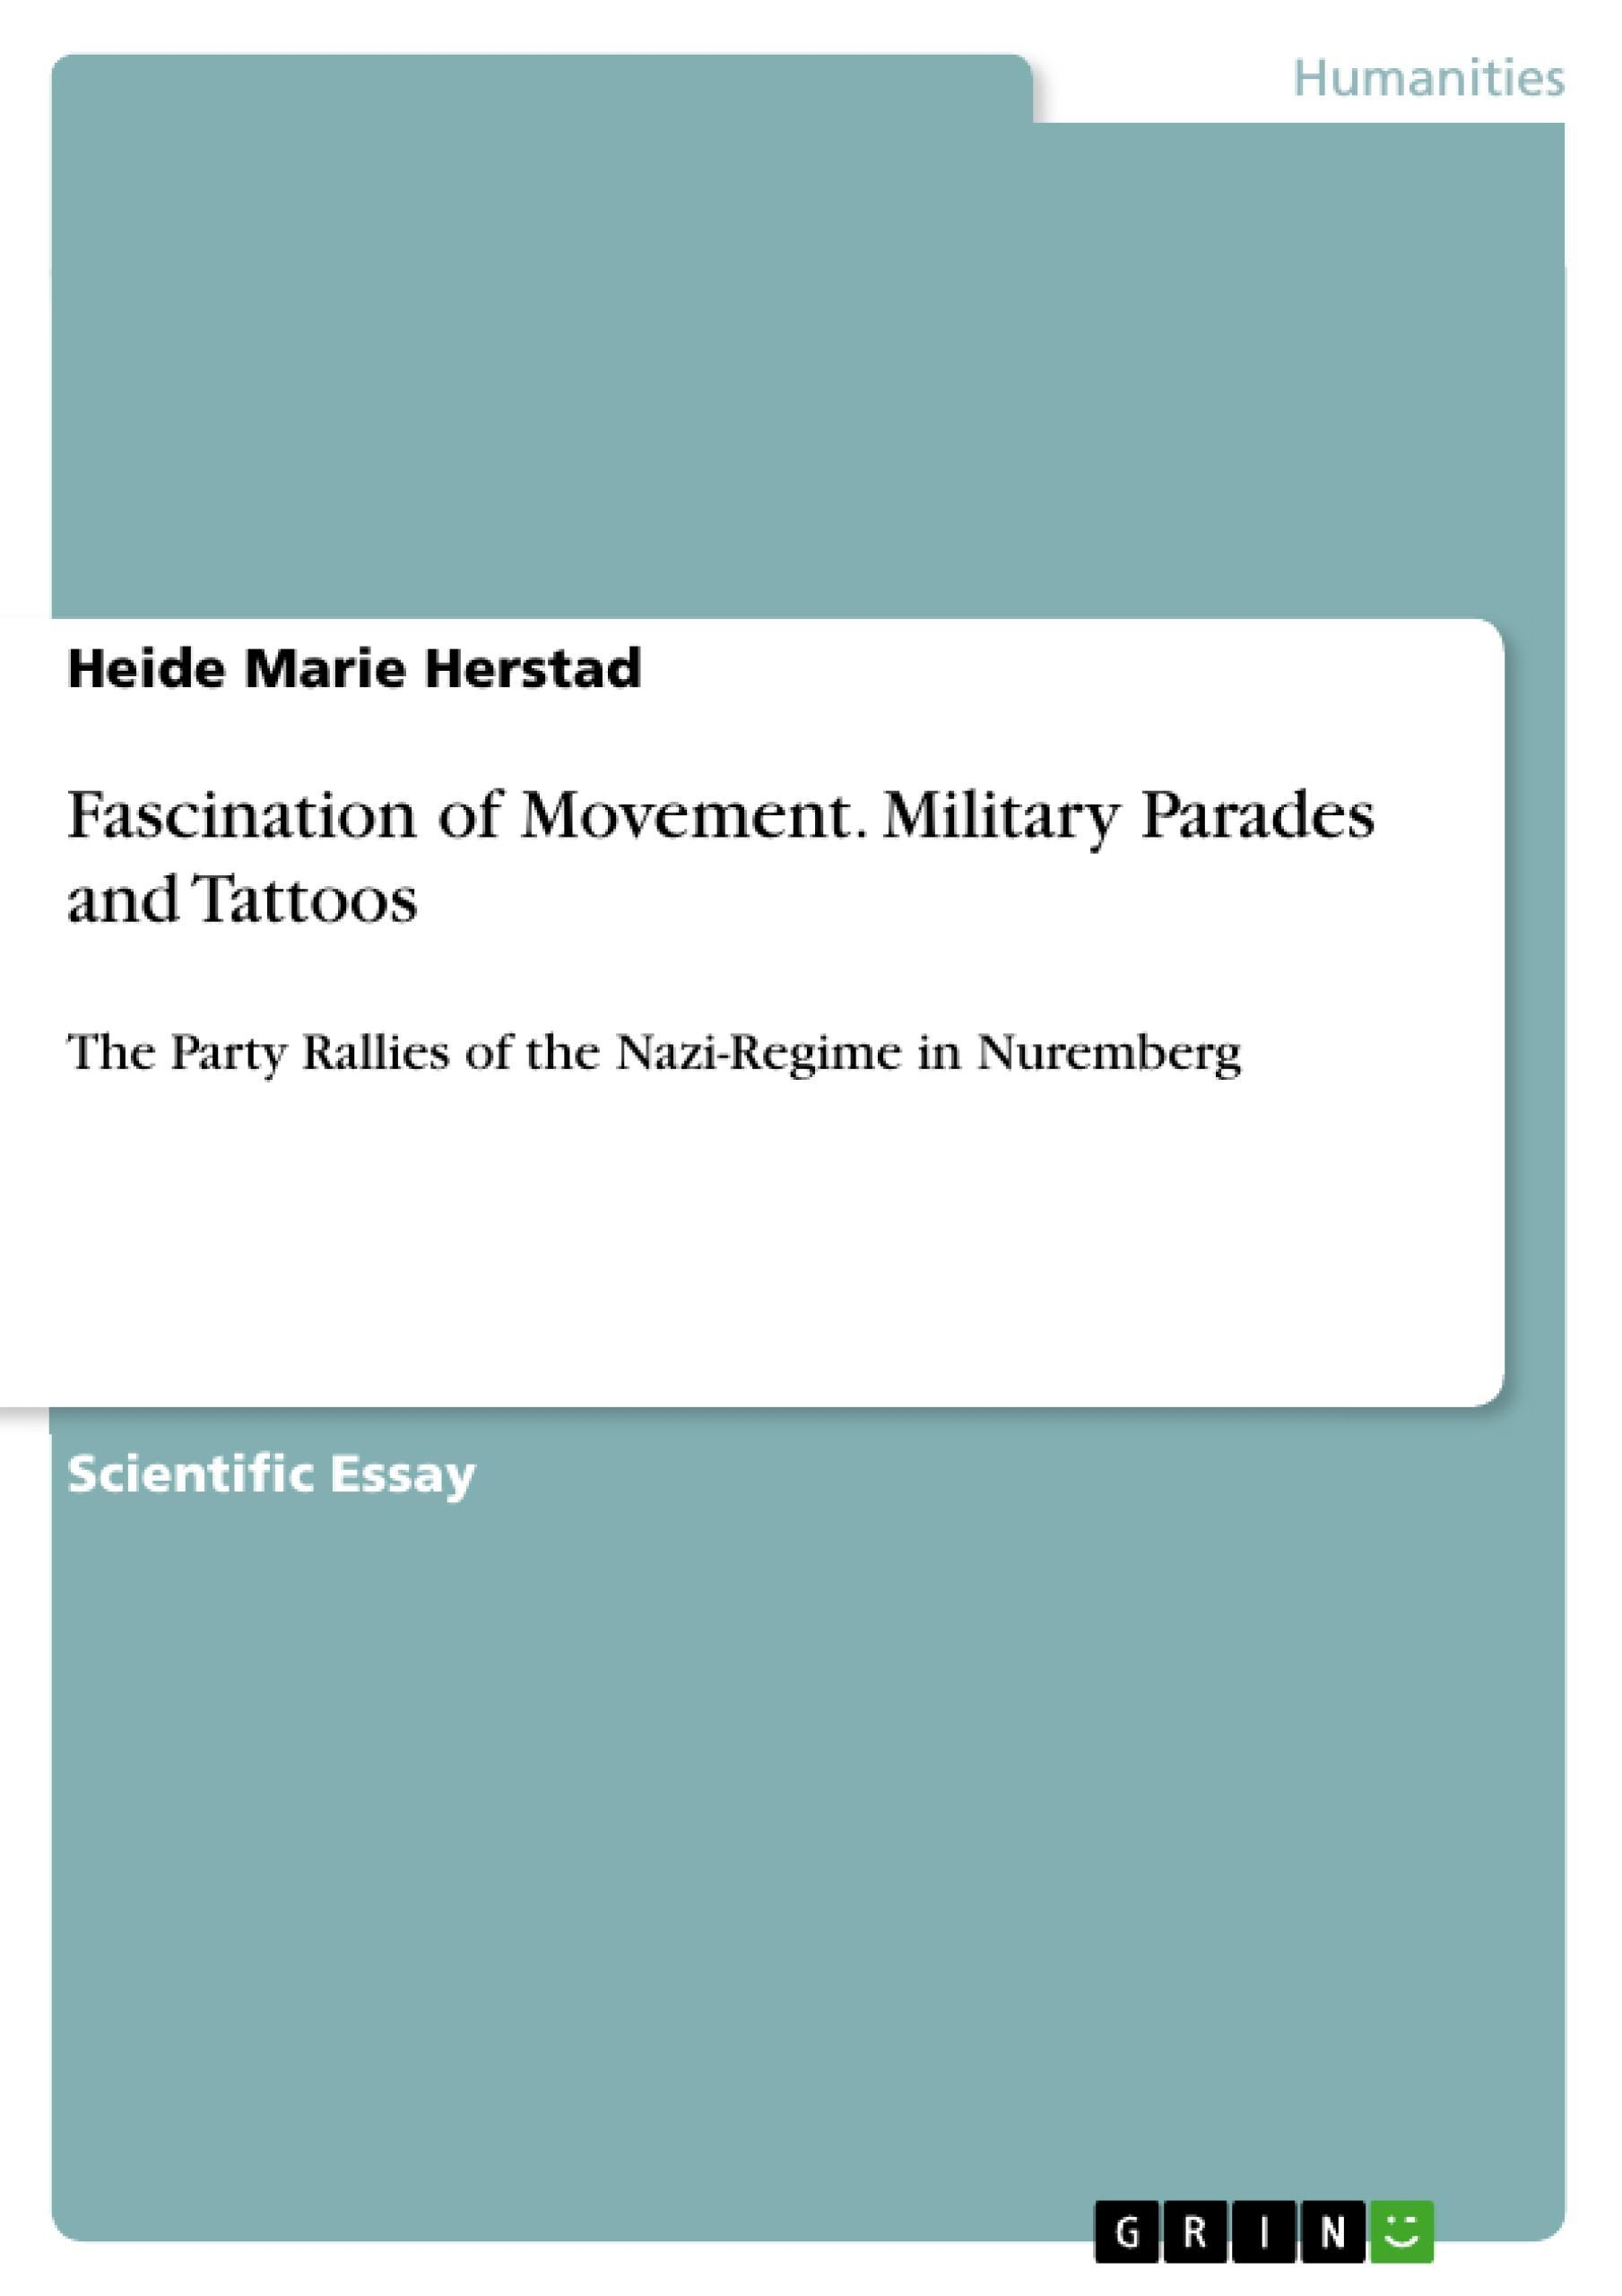 Fascination of Movement. Military Parades and Tattoos Heide Marie Herstad